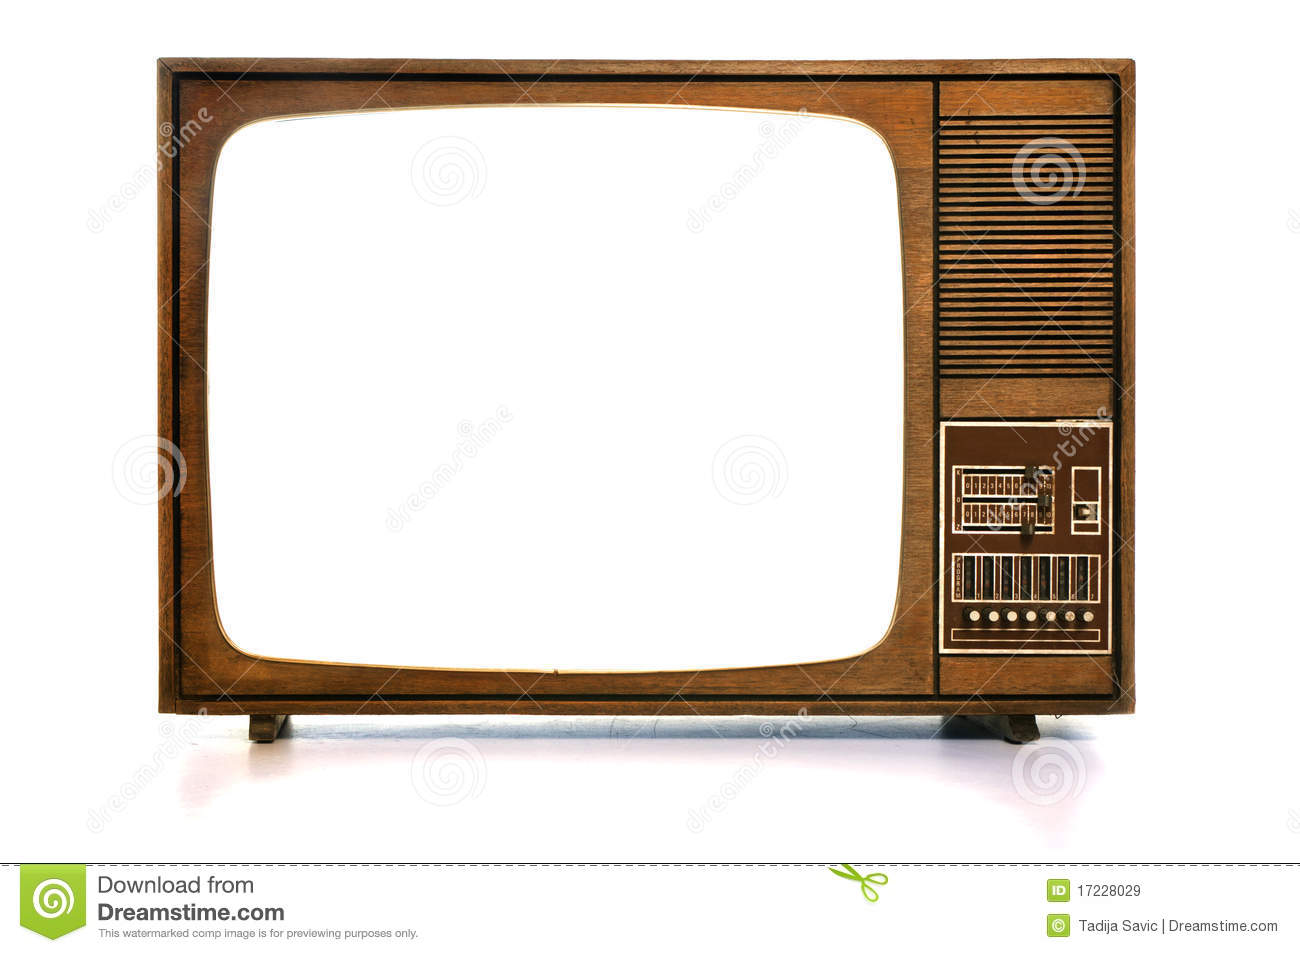 how to get television set for free